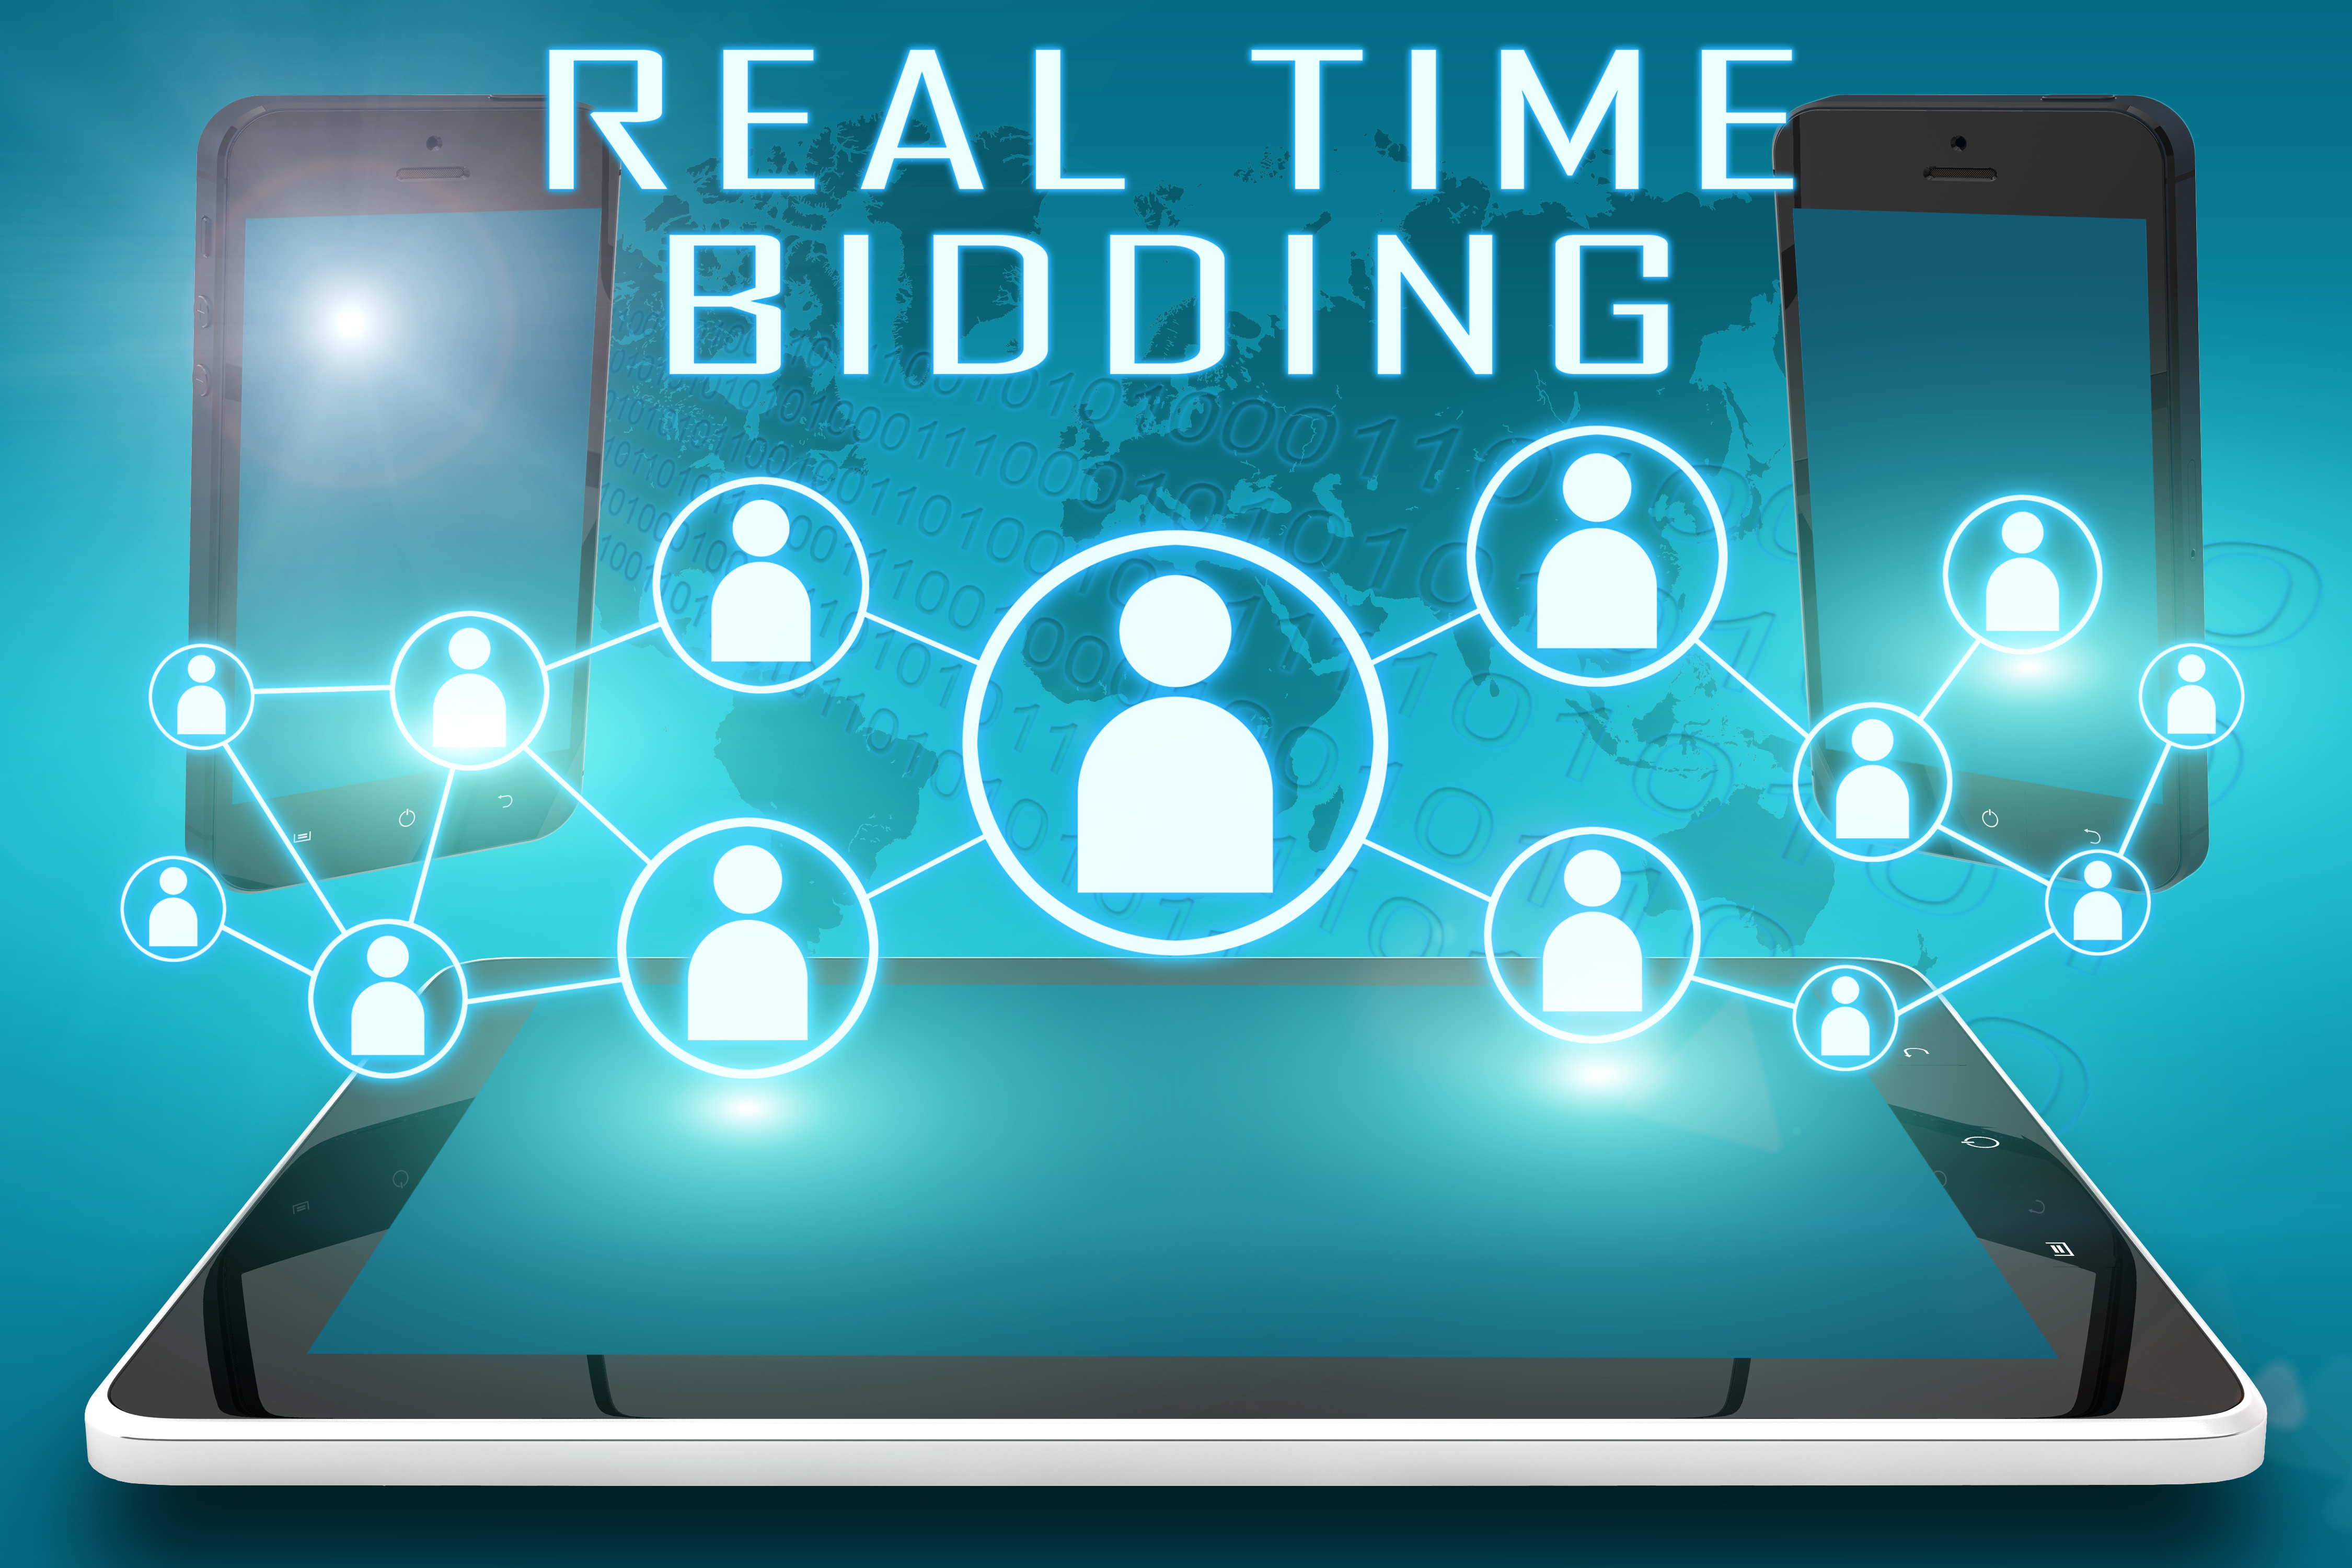 Le phénomène du Real Time Bidding en 3 questions – partie 2